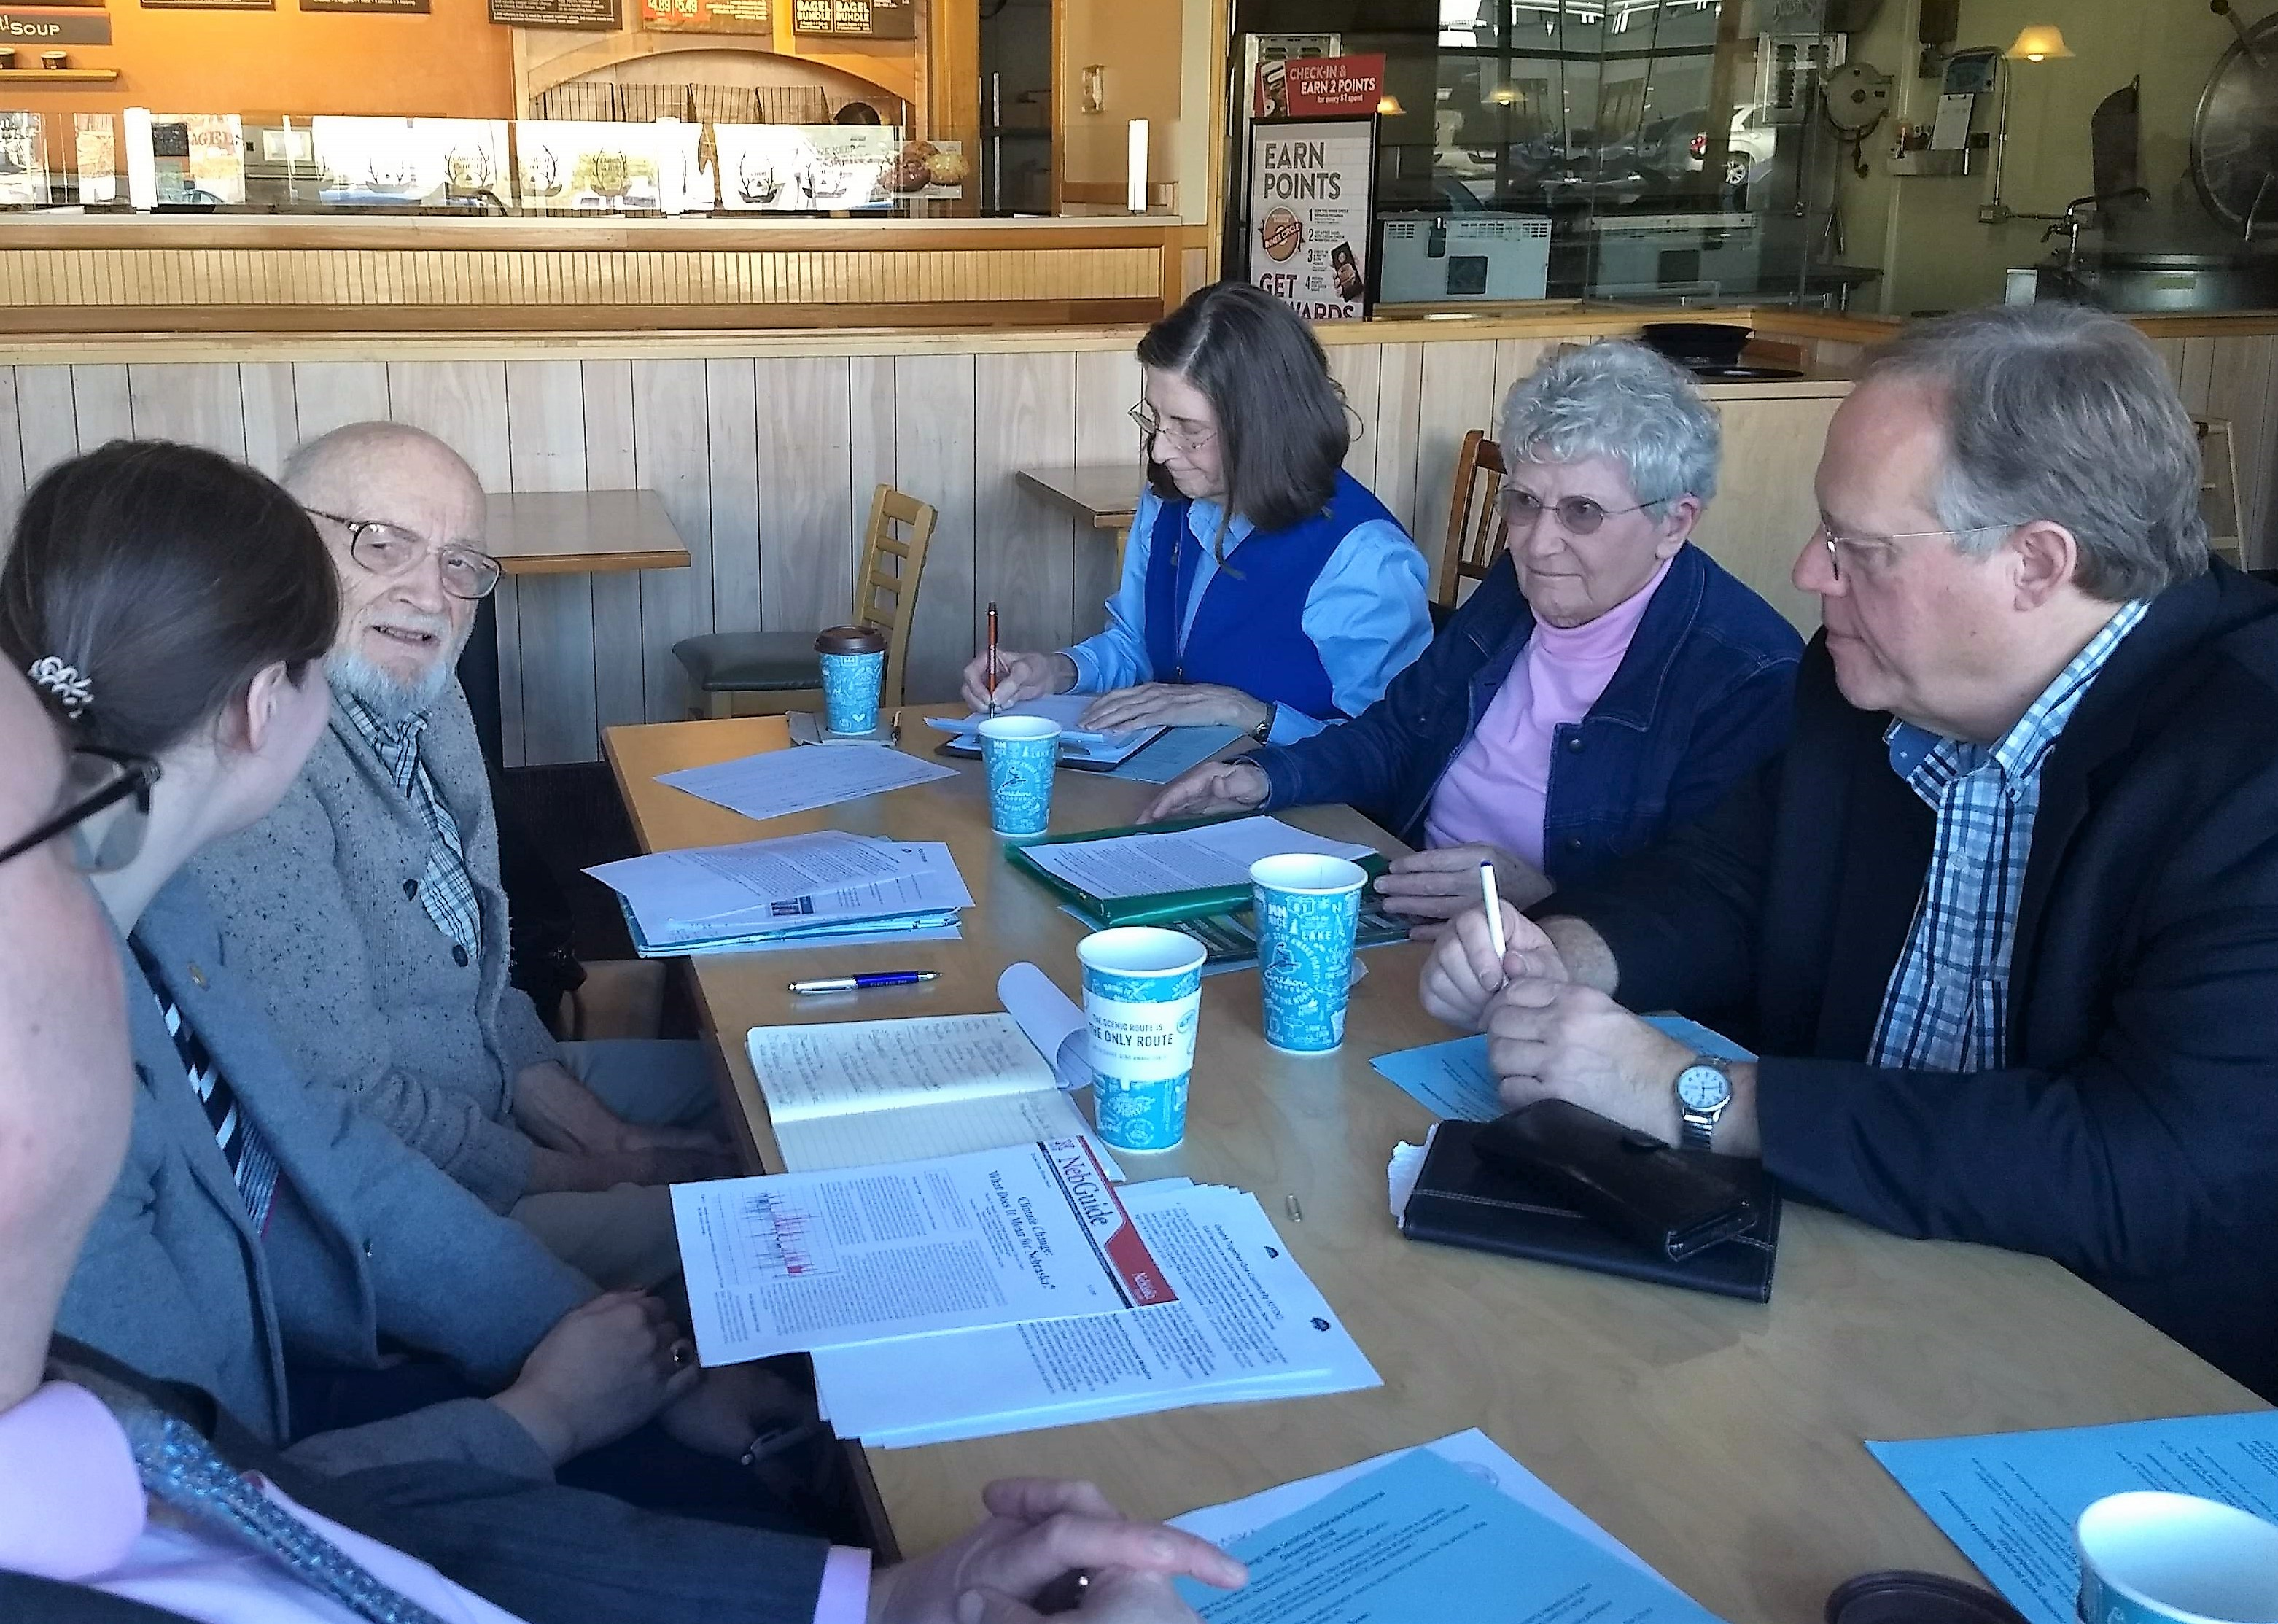 OTOC meets with 9 area senators in anticipation of 2019 Unicameral session - 11